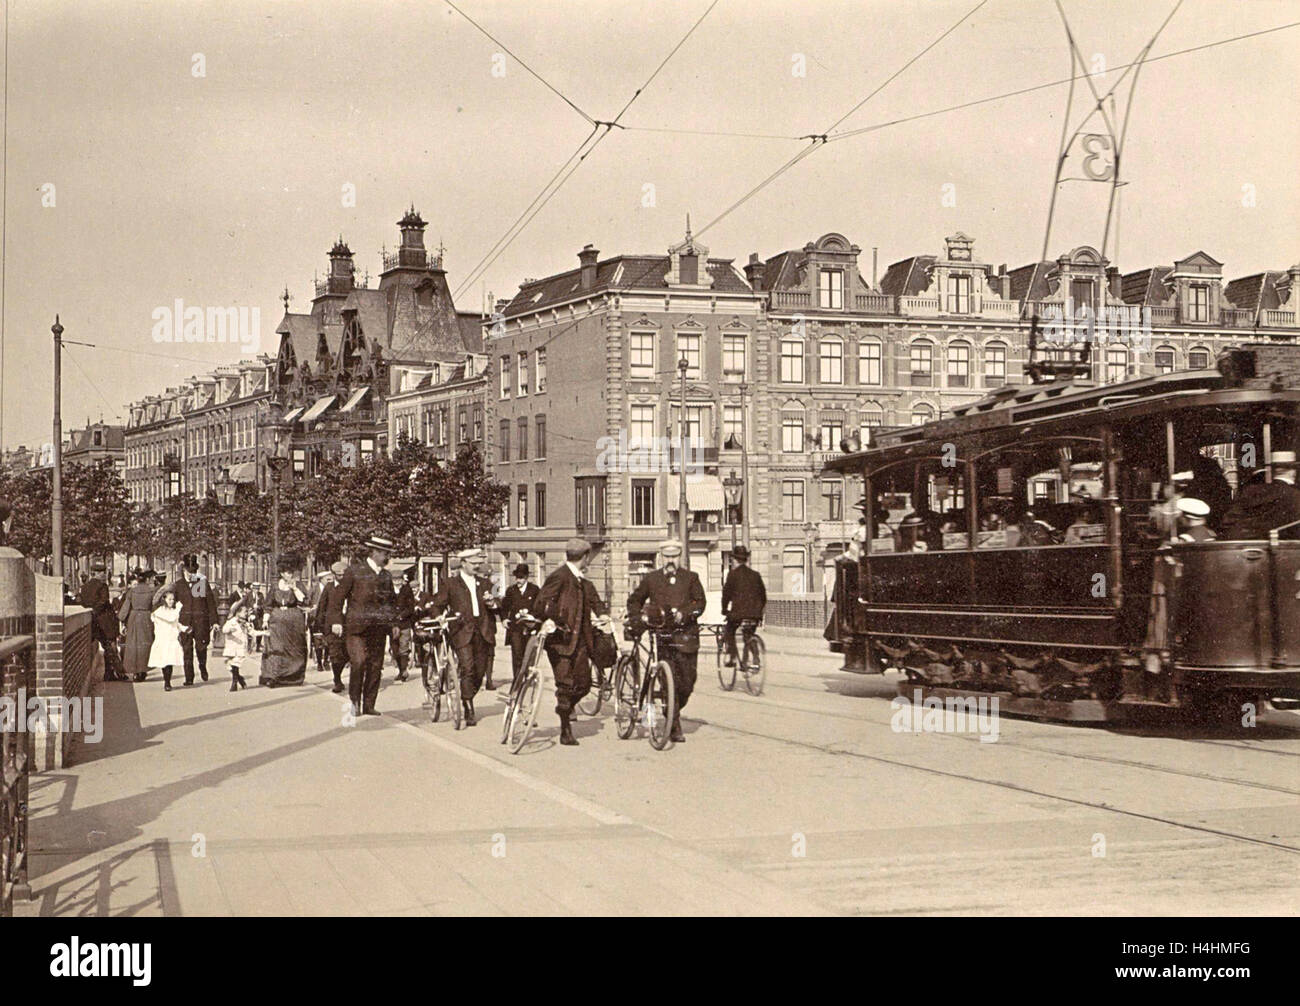 Tram 3 and passers-by on the New Amstelbrug given direction Ceintuurbaan, The Netherlands, Anonymous, c. 1903 - - Stock Image